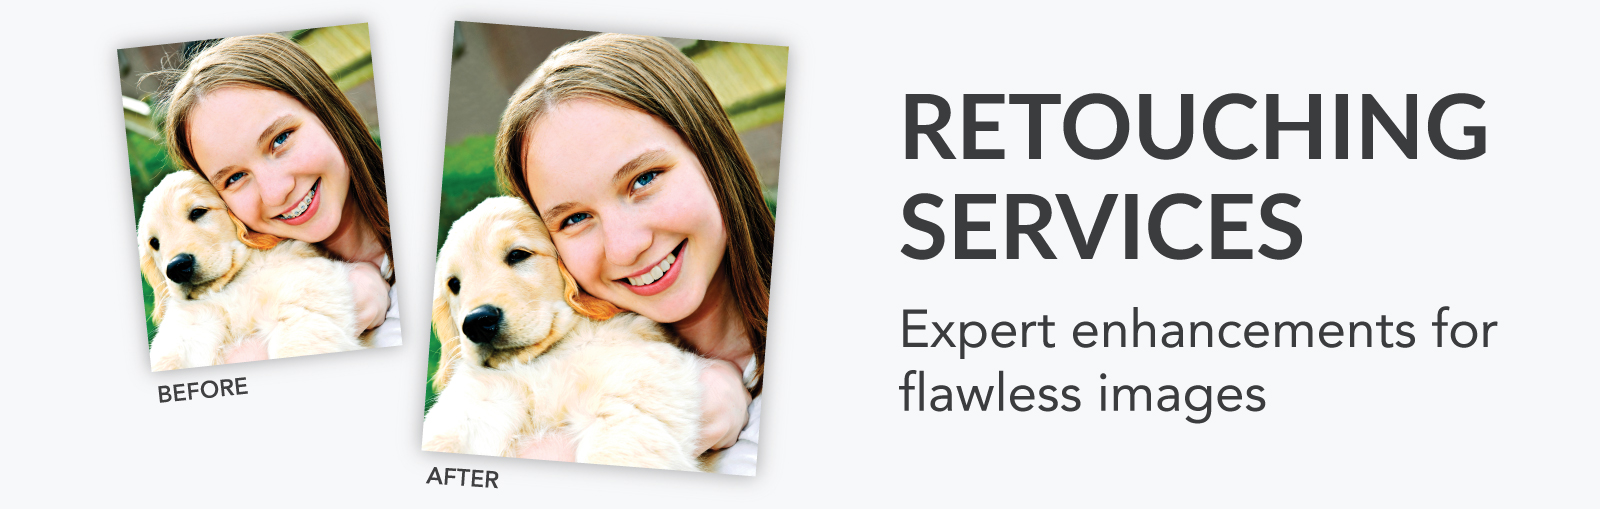 Comparison of Retouching Services of Two Images of Little Girl with Puppy